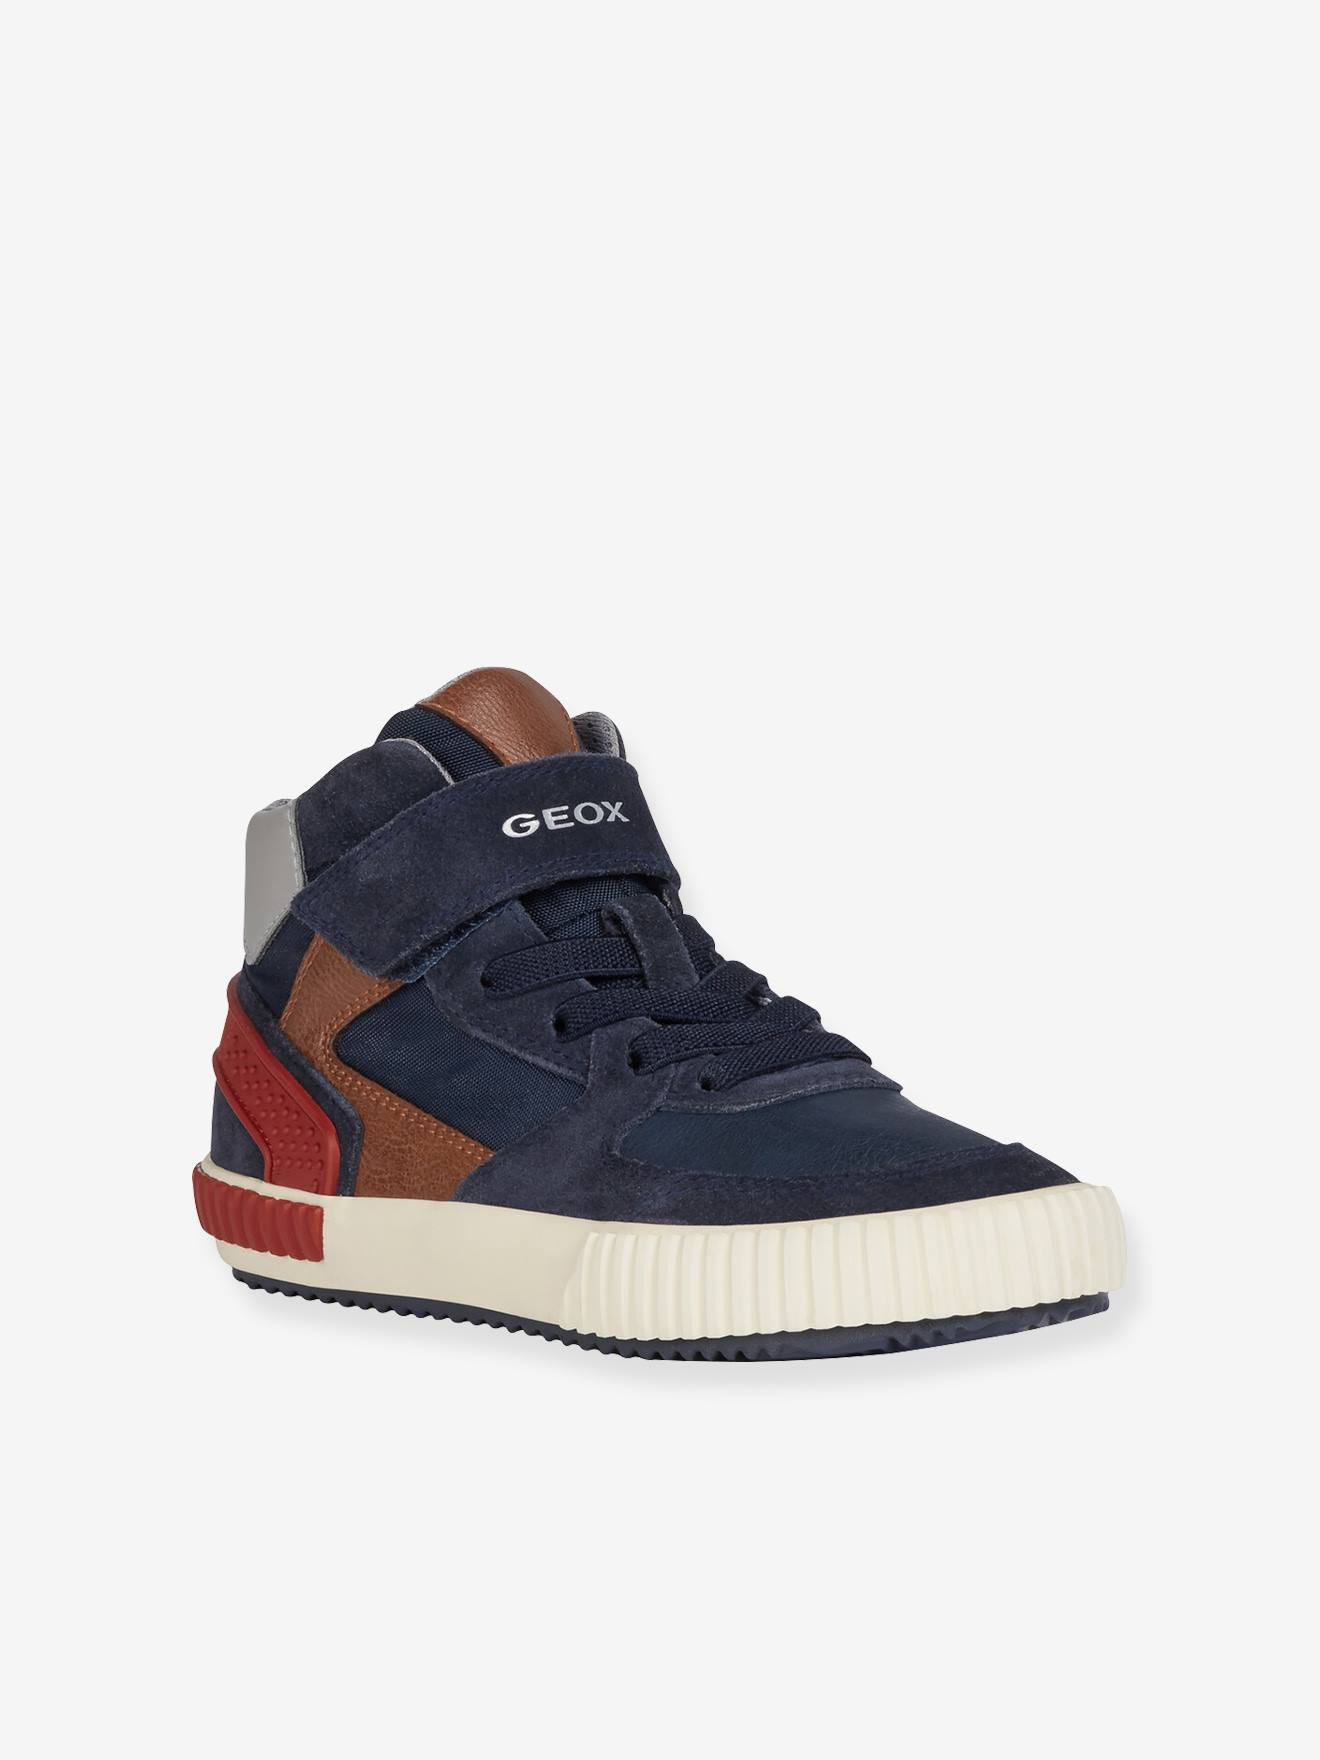 chaussures bebe 2 ans geox